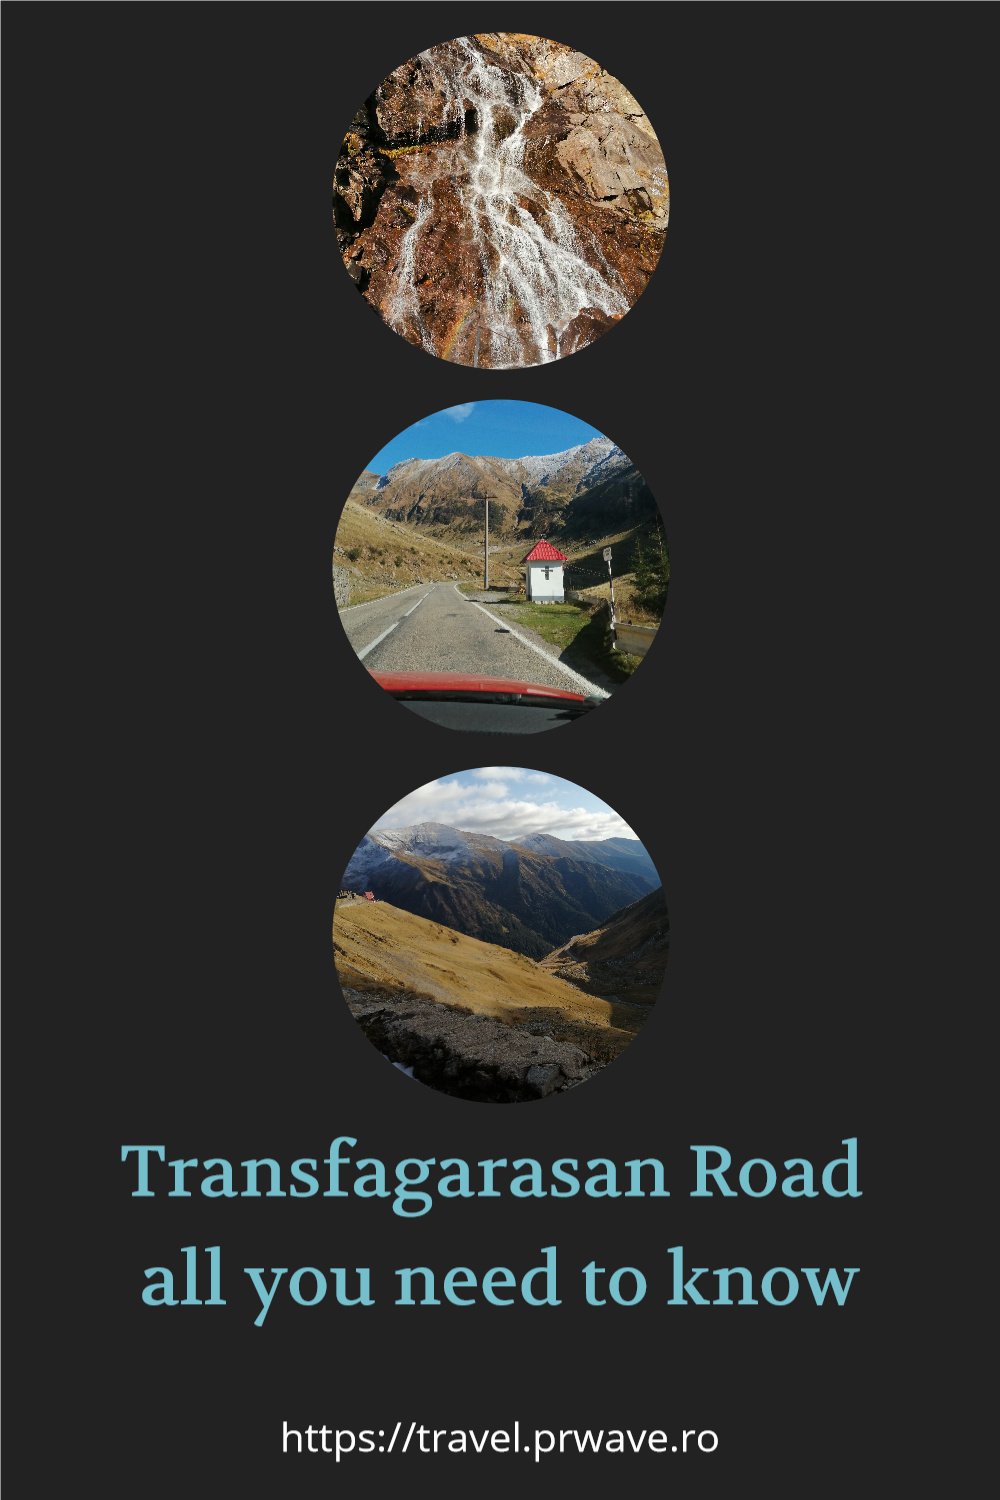 Transfagarasan Road, Romania: all you need to know. Discover the top things to do on the Transfagarasan, interesting information about the Transfagarasan history, weather conditions, and Transfagarasan viewpoints. Plan the perfect Transfagarasan road trip with the help of this article. Read the article now! #transfagarasan #transfagarasanroad #transfagarasanhighway #transfagarasanromania #romania #romaniatravel #europe #roadtrip #romaniaroadtrip #travelmomentsintime #visitromania